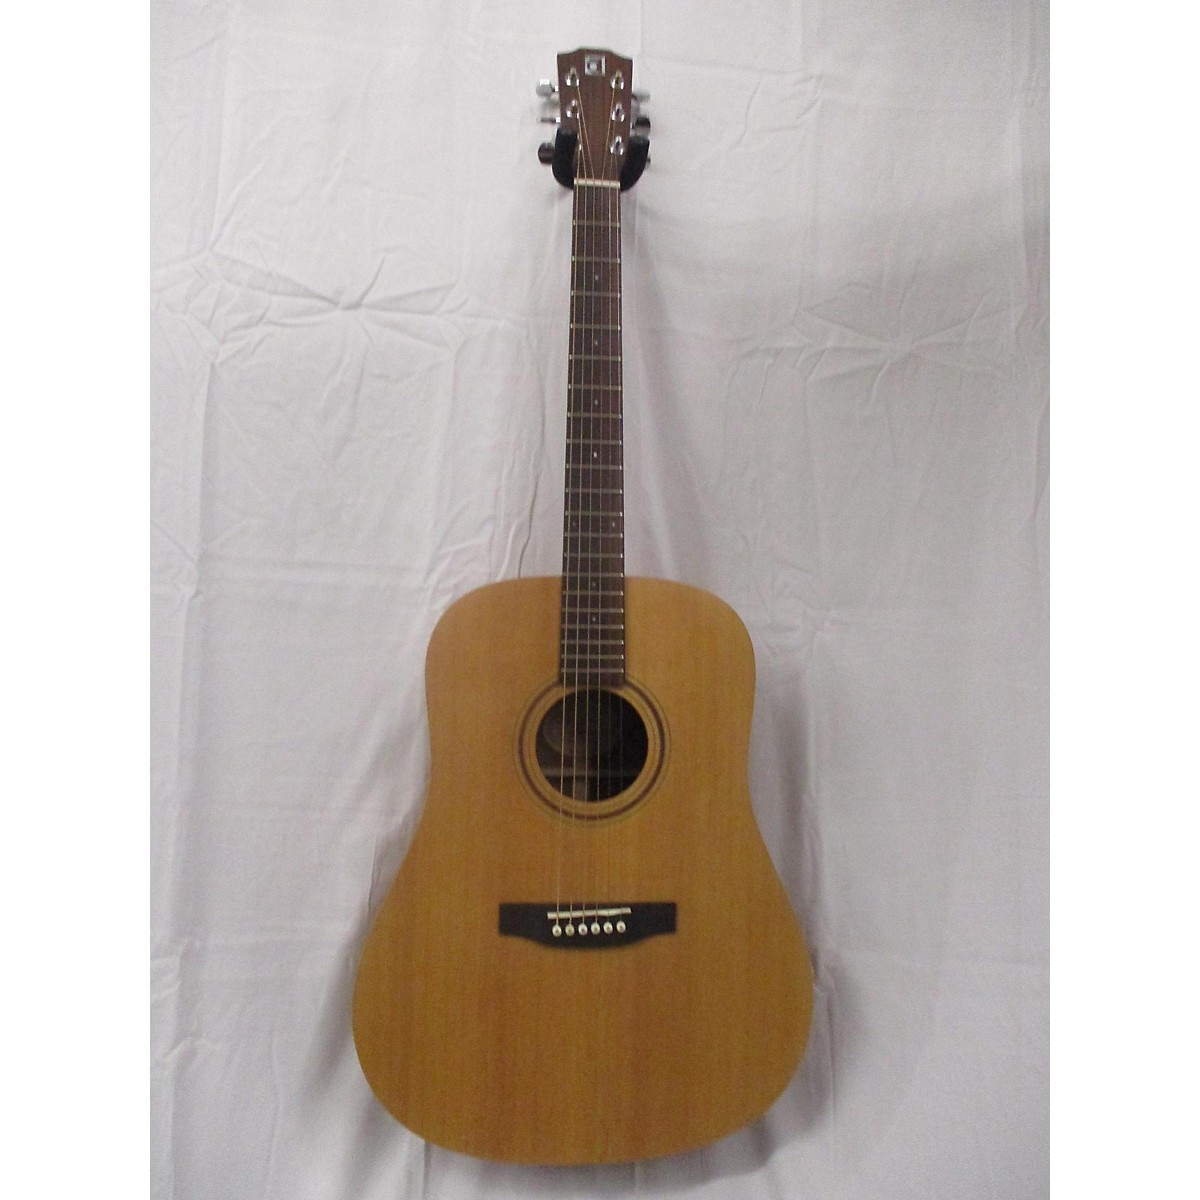 Ayers DS Dreadnought Acoustic Guitar